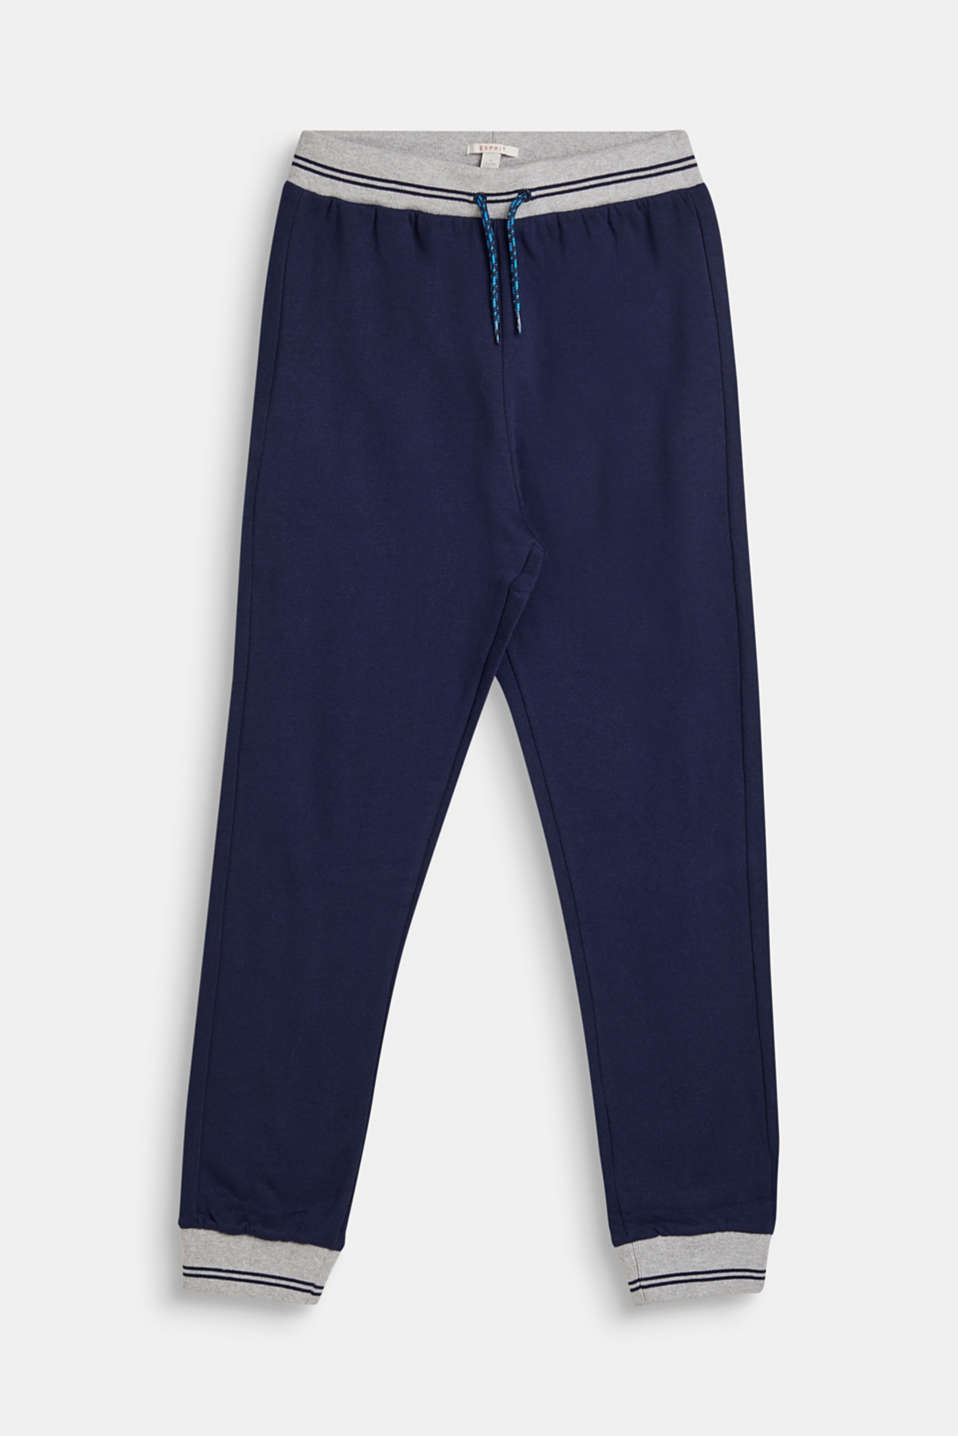 Esprit - Tracksuit bottoms with ribbed cuffs, 100% cotton